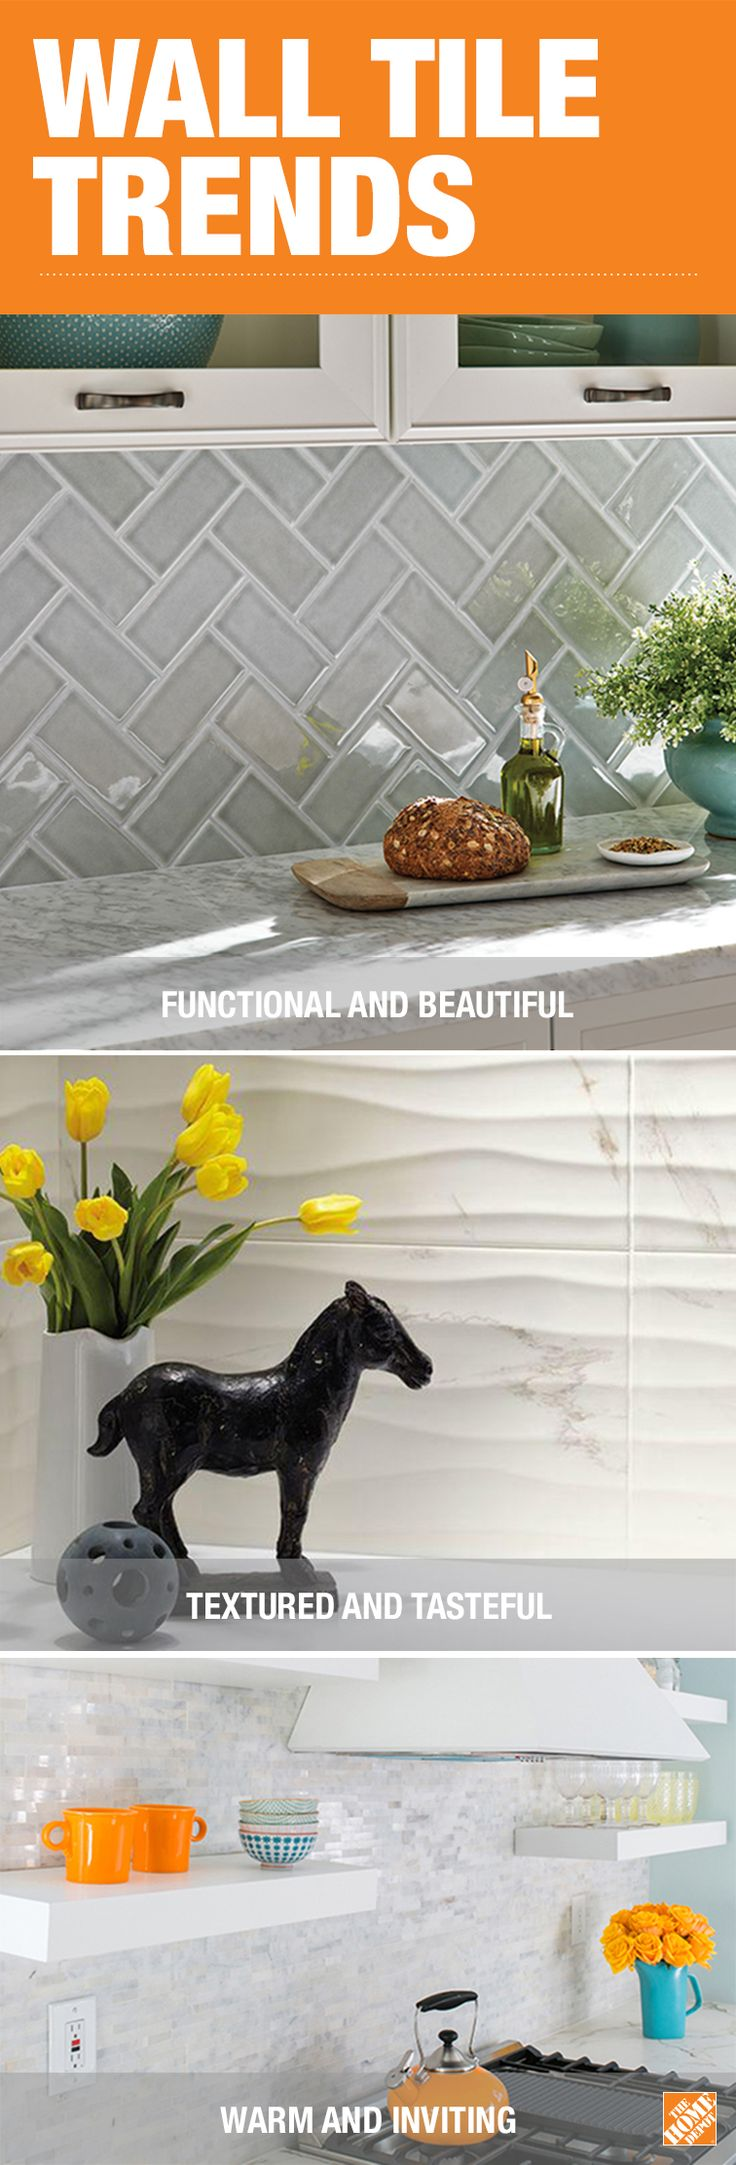 From the latest trends to simple DIY installation ideas, The Home Depot has everything you need to update your home with beautiful, functional tile. For a small project, easy-to-care-for subway tile makes a perfect upgrade for a kitchen backsplash. Or use textured tile to create a focal point and add style to any room in your home. Click to browse the latest trends in durable, beautiful tile that's designed for real life.